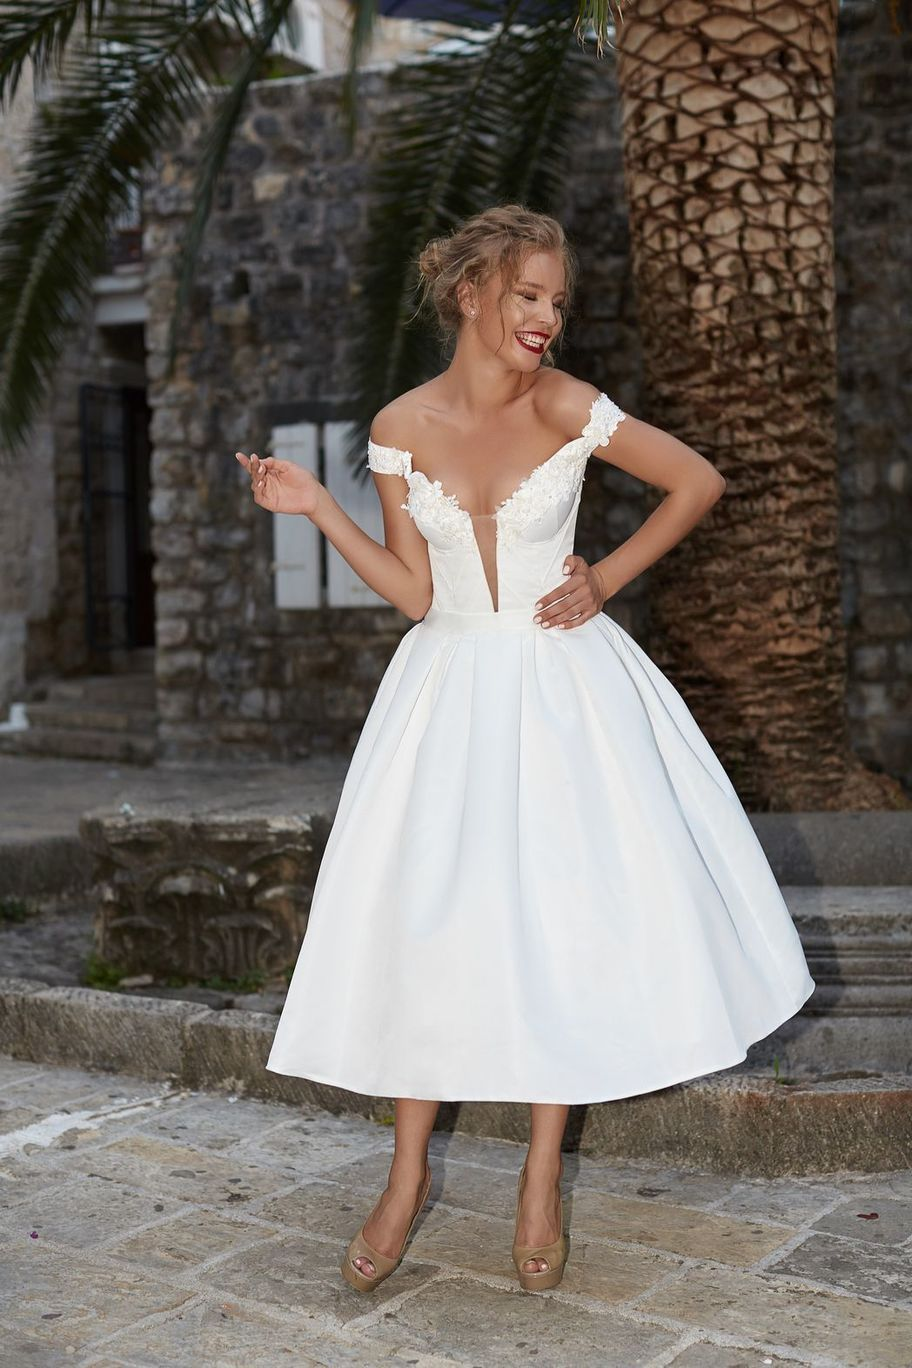 605a6b284819f 1950S Vintage Ball Gown Wedding Dresses Off the Shoulder Lace Accents  Bridal Gowns from MissZhu Bridal